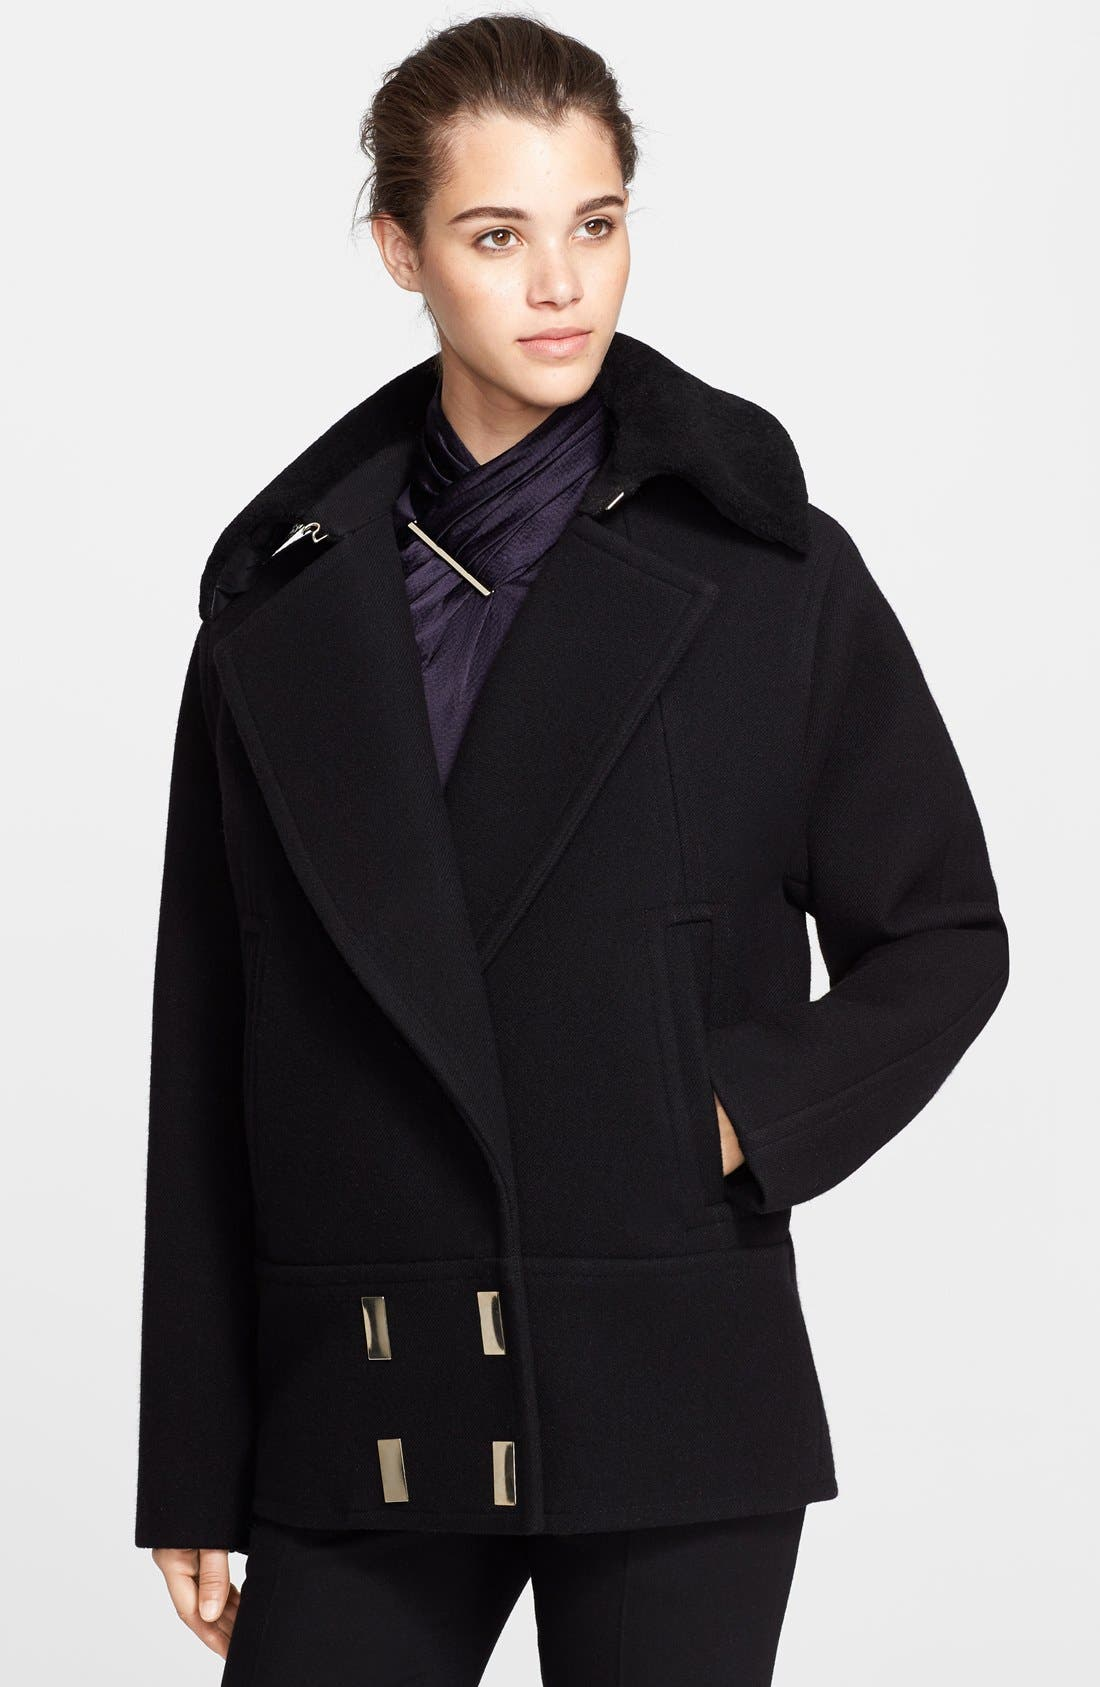 Alternate Image 1 Selected - Jason Wu Felted Wool Blend Coat with Genuine Shearling Collar